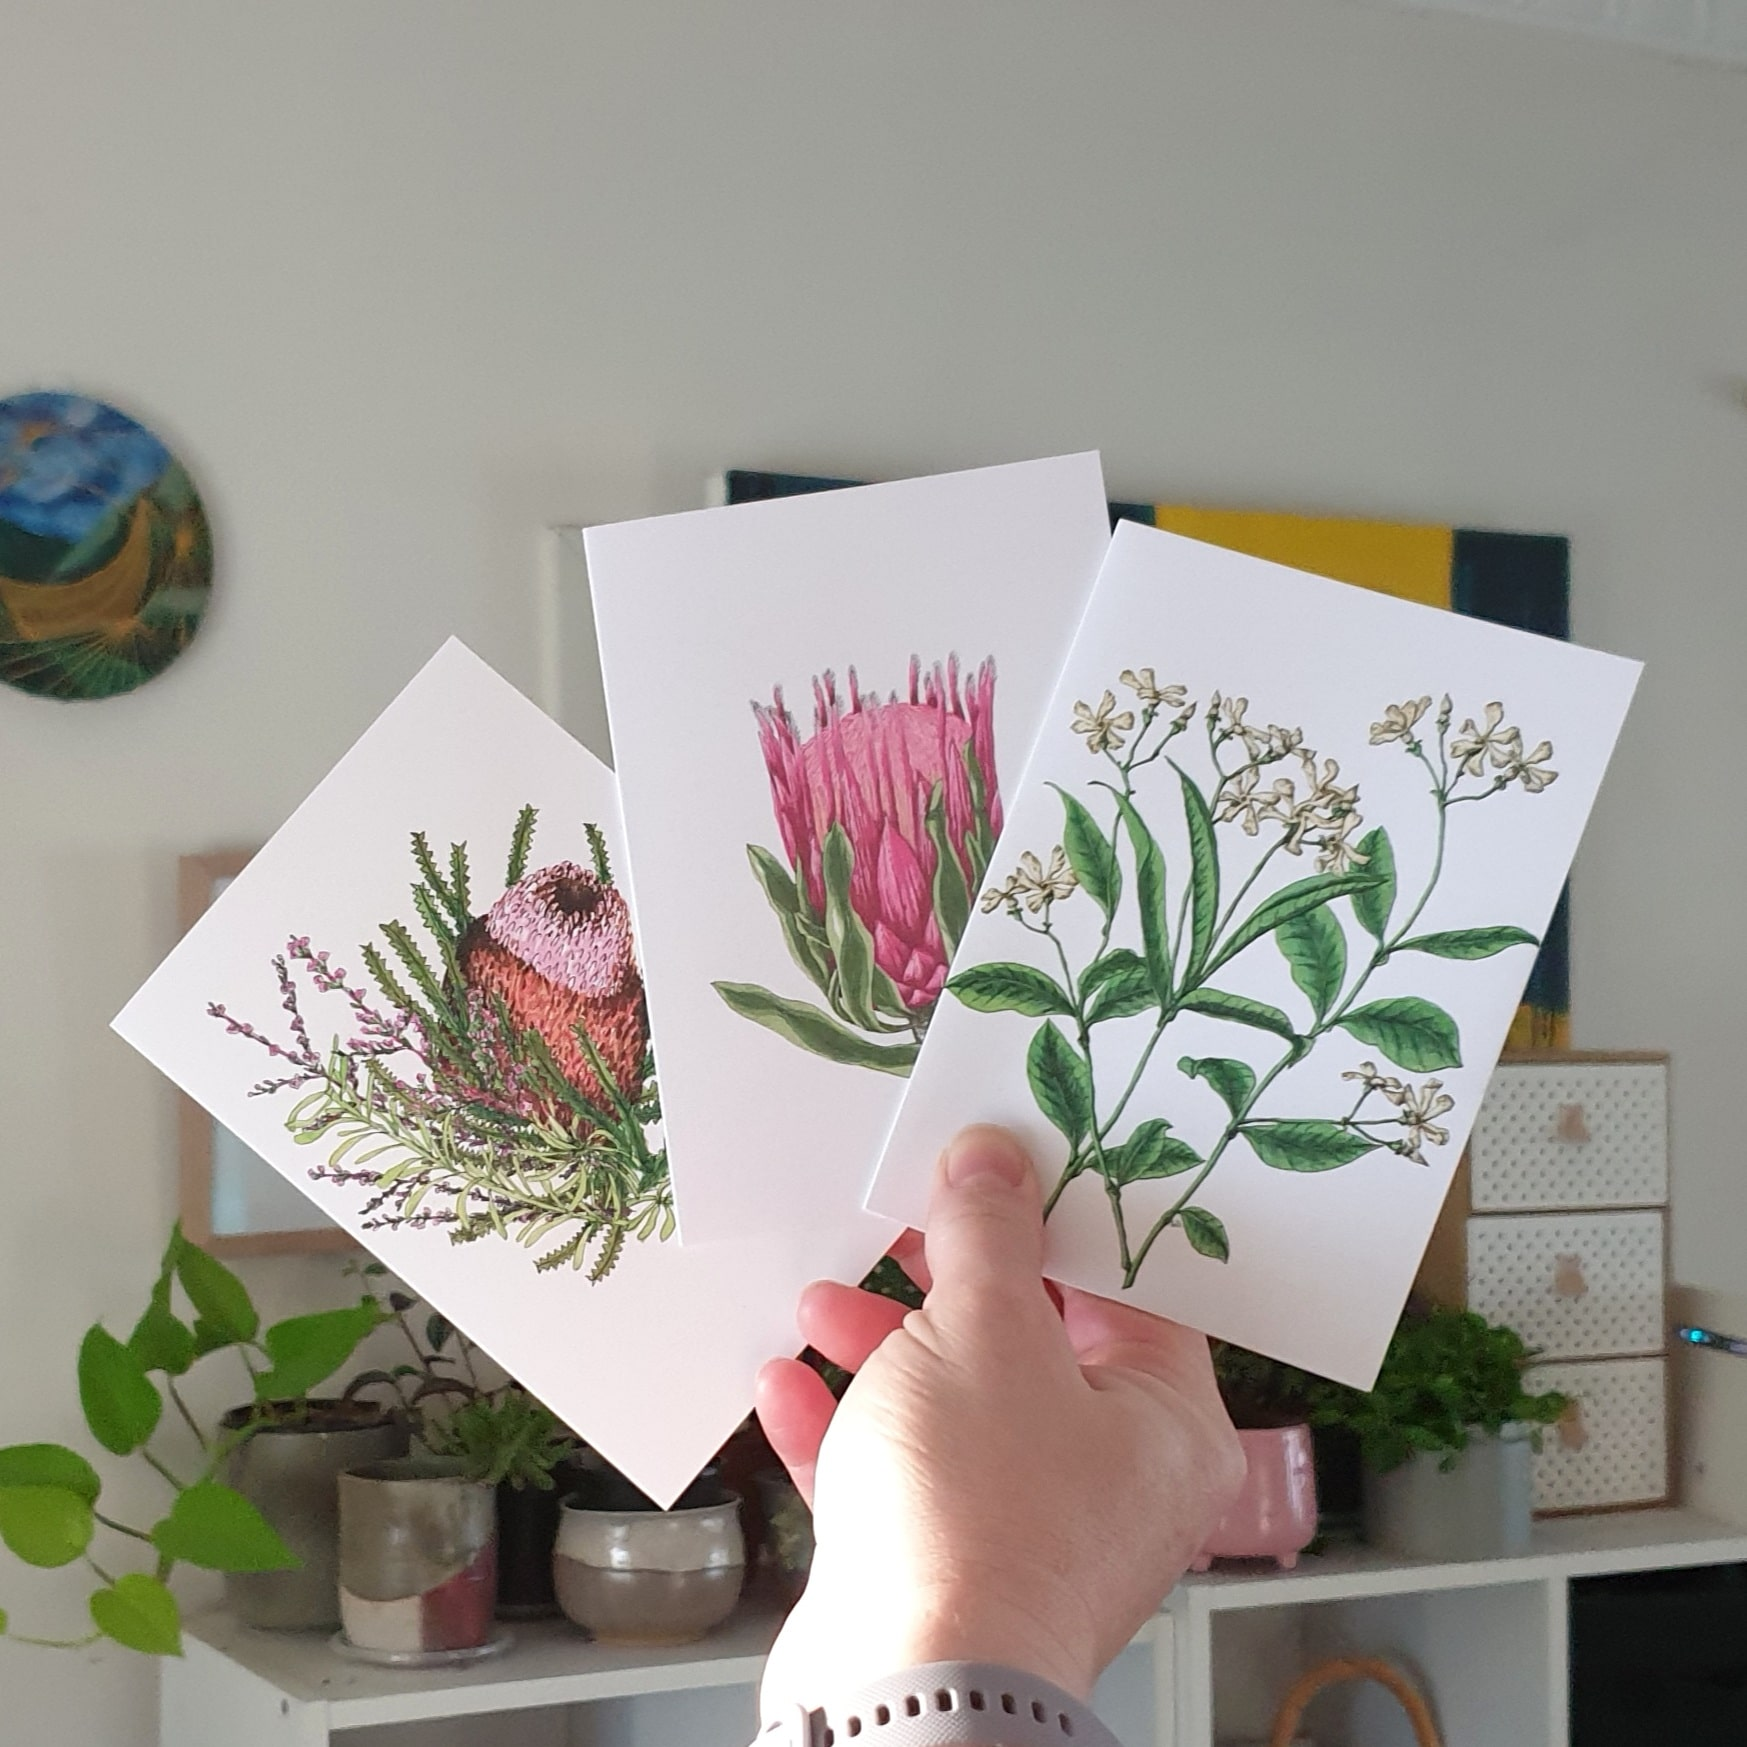 'Flower Mix' Three Card Pack Greeting Cards Botanical Collection Sarah Sheldon Art By A Vibrant Nest